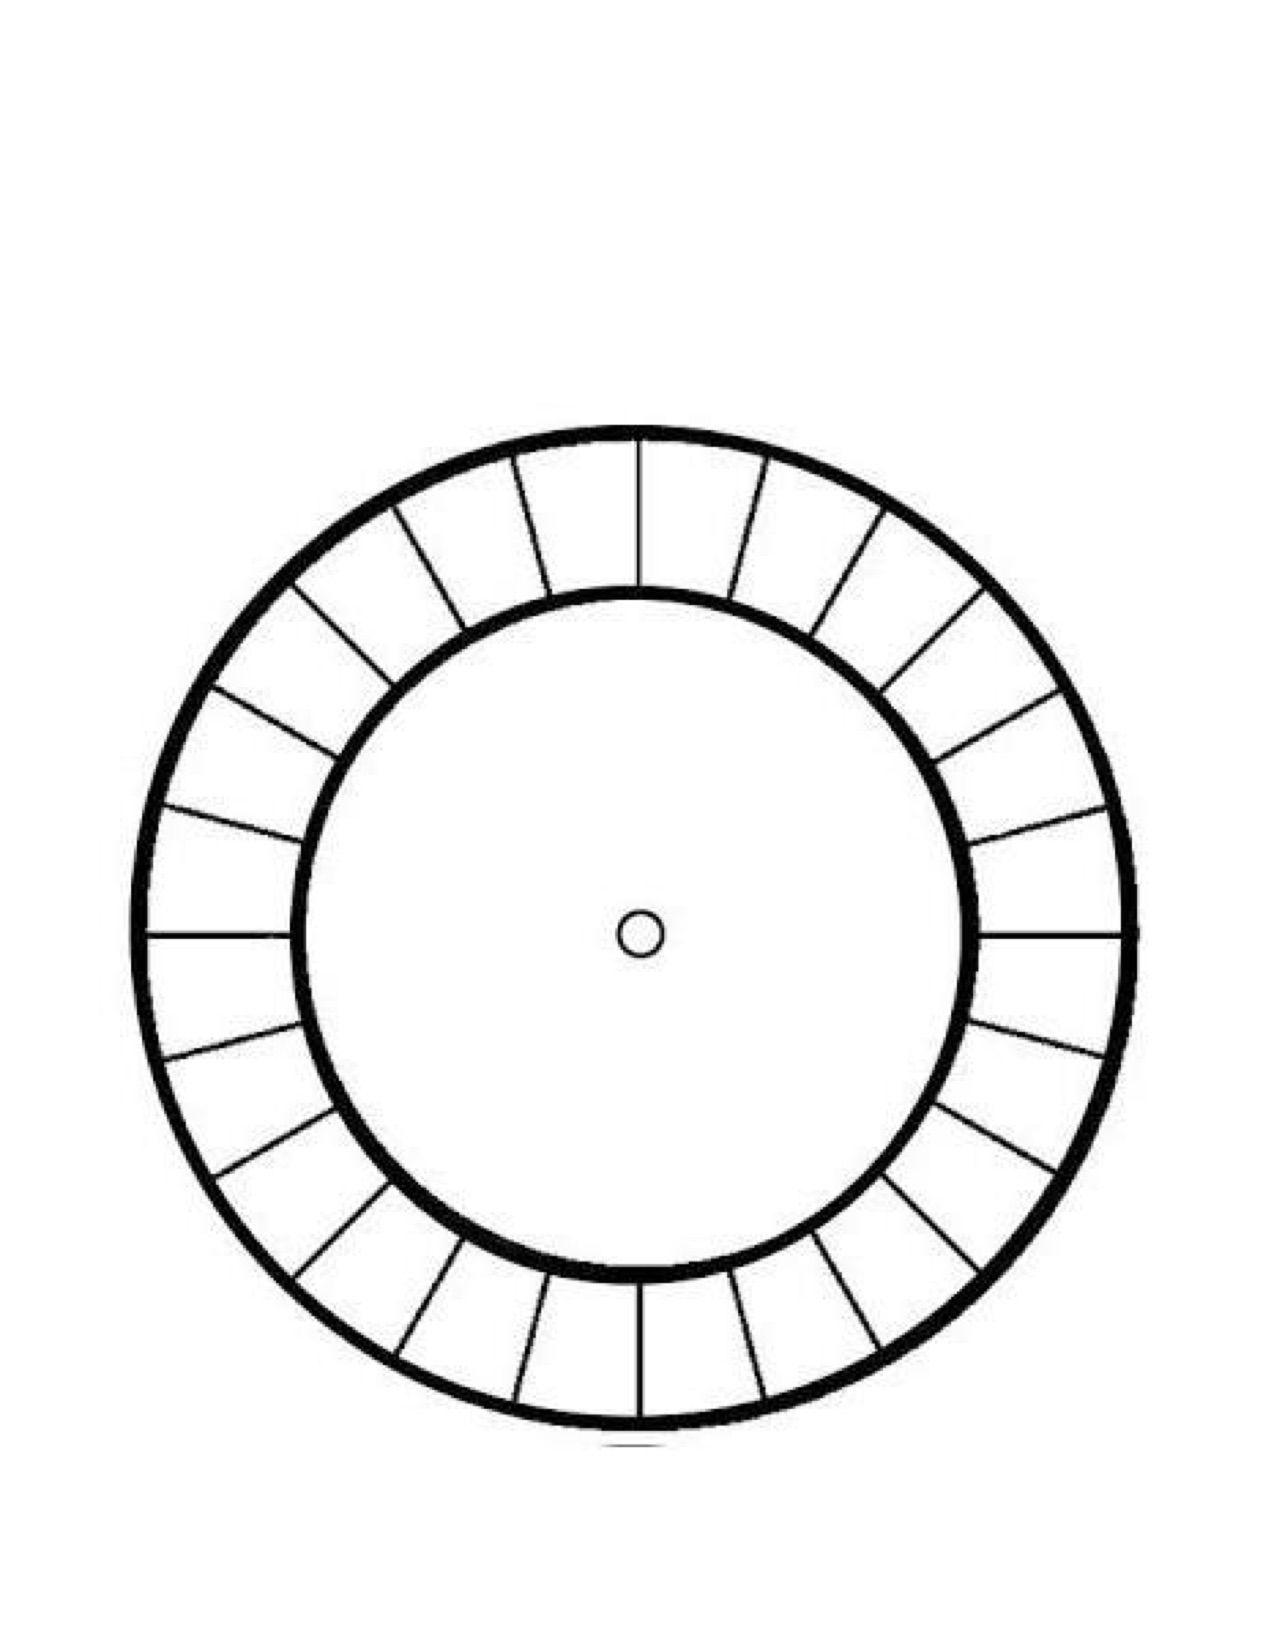 Cipher Wheel Template Part 1